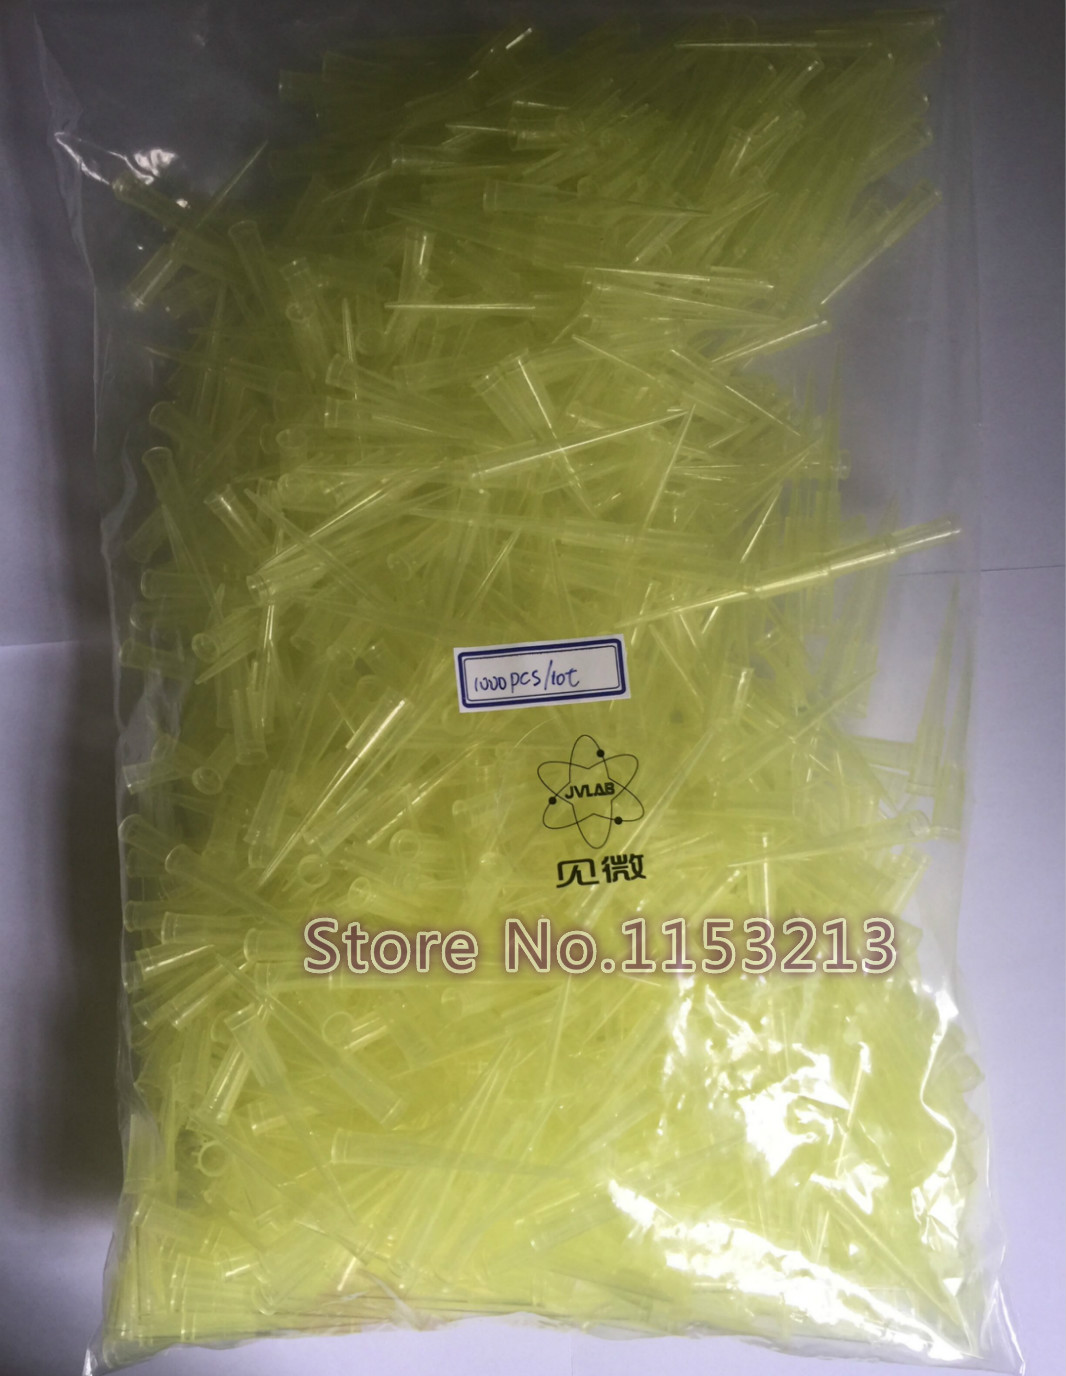 1000pcs/lot Disposable PP Plastic Pipette Tips Match Dlab brand Pipettor Universal Yellow Pipet Tips for 20ul/ 50ul/100ul/200ul